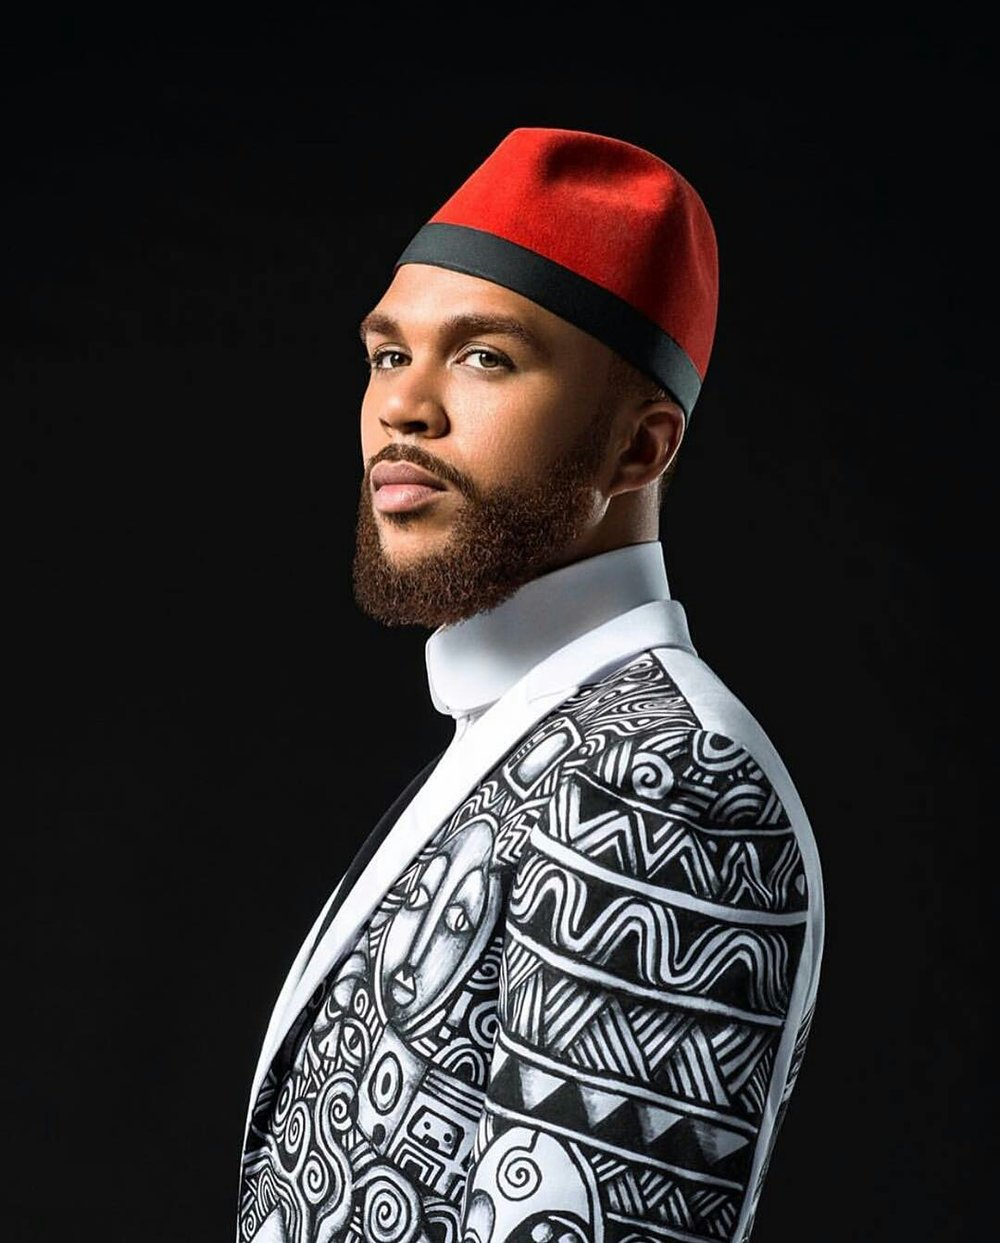 Us based Nigerian singer Jidenna wearing a custom jacket by Laolu